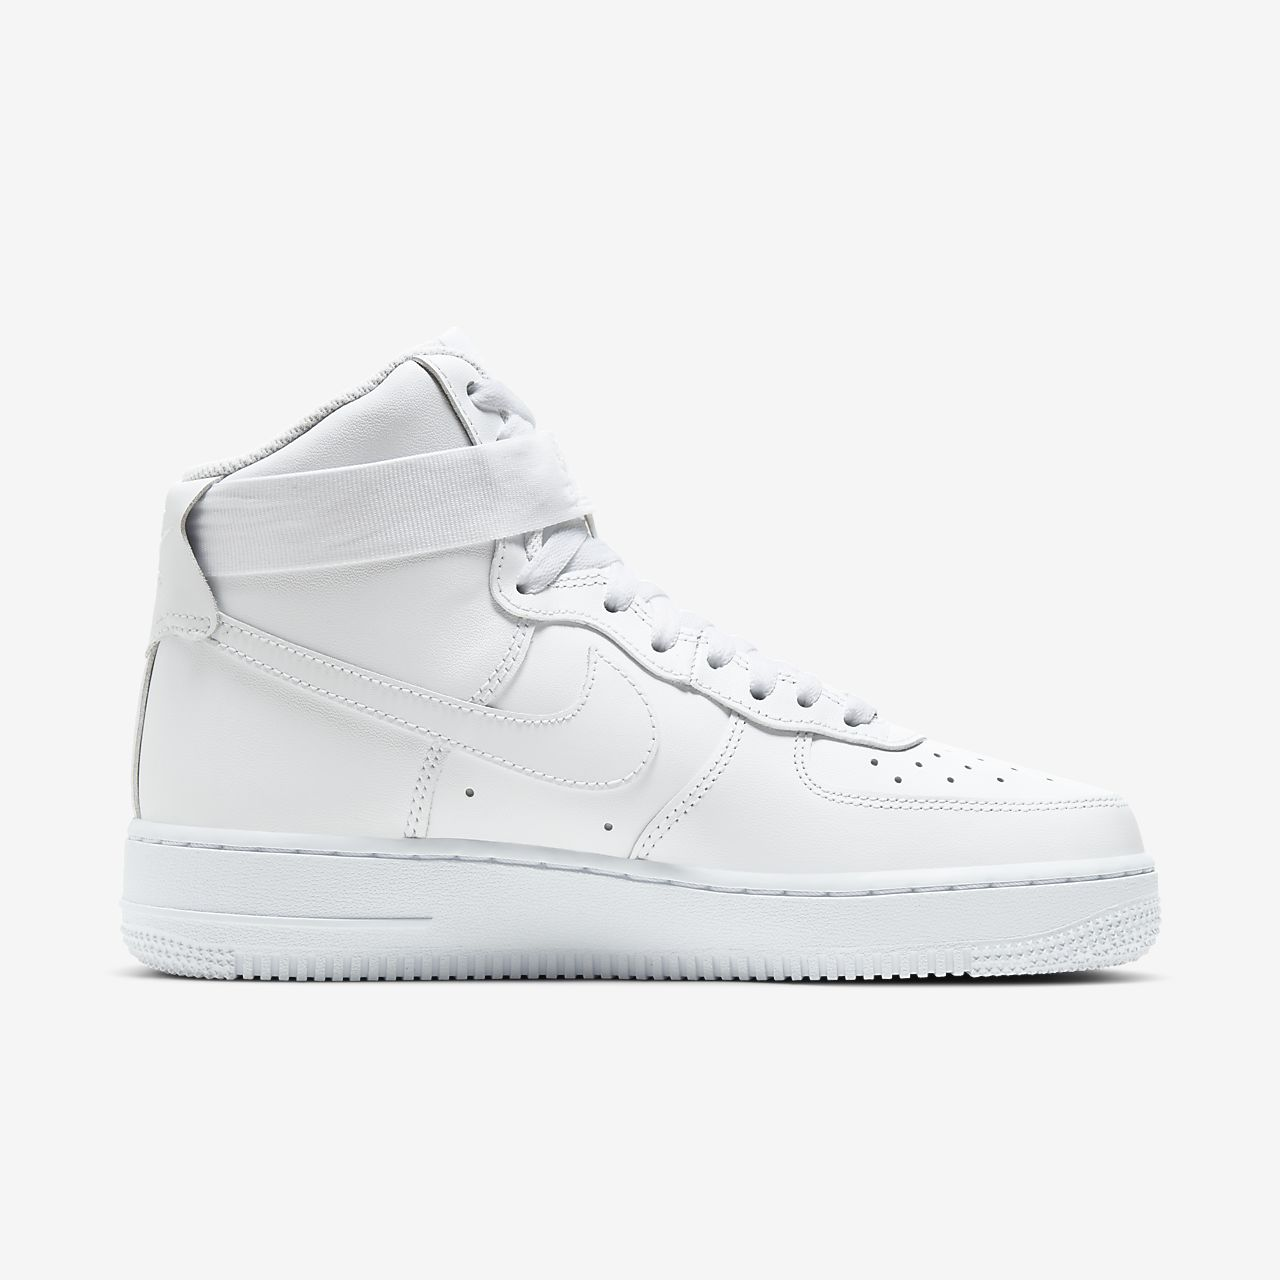 best website b41d5 0a27f ... Nike Air Force 1 High 08 LE Women s Shoe